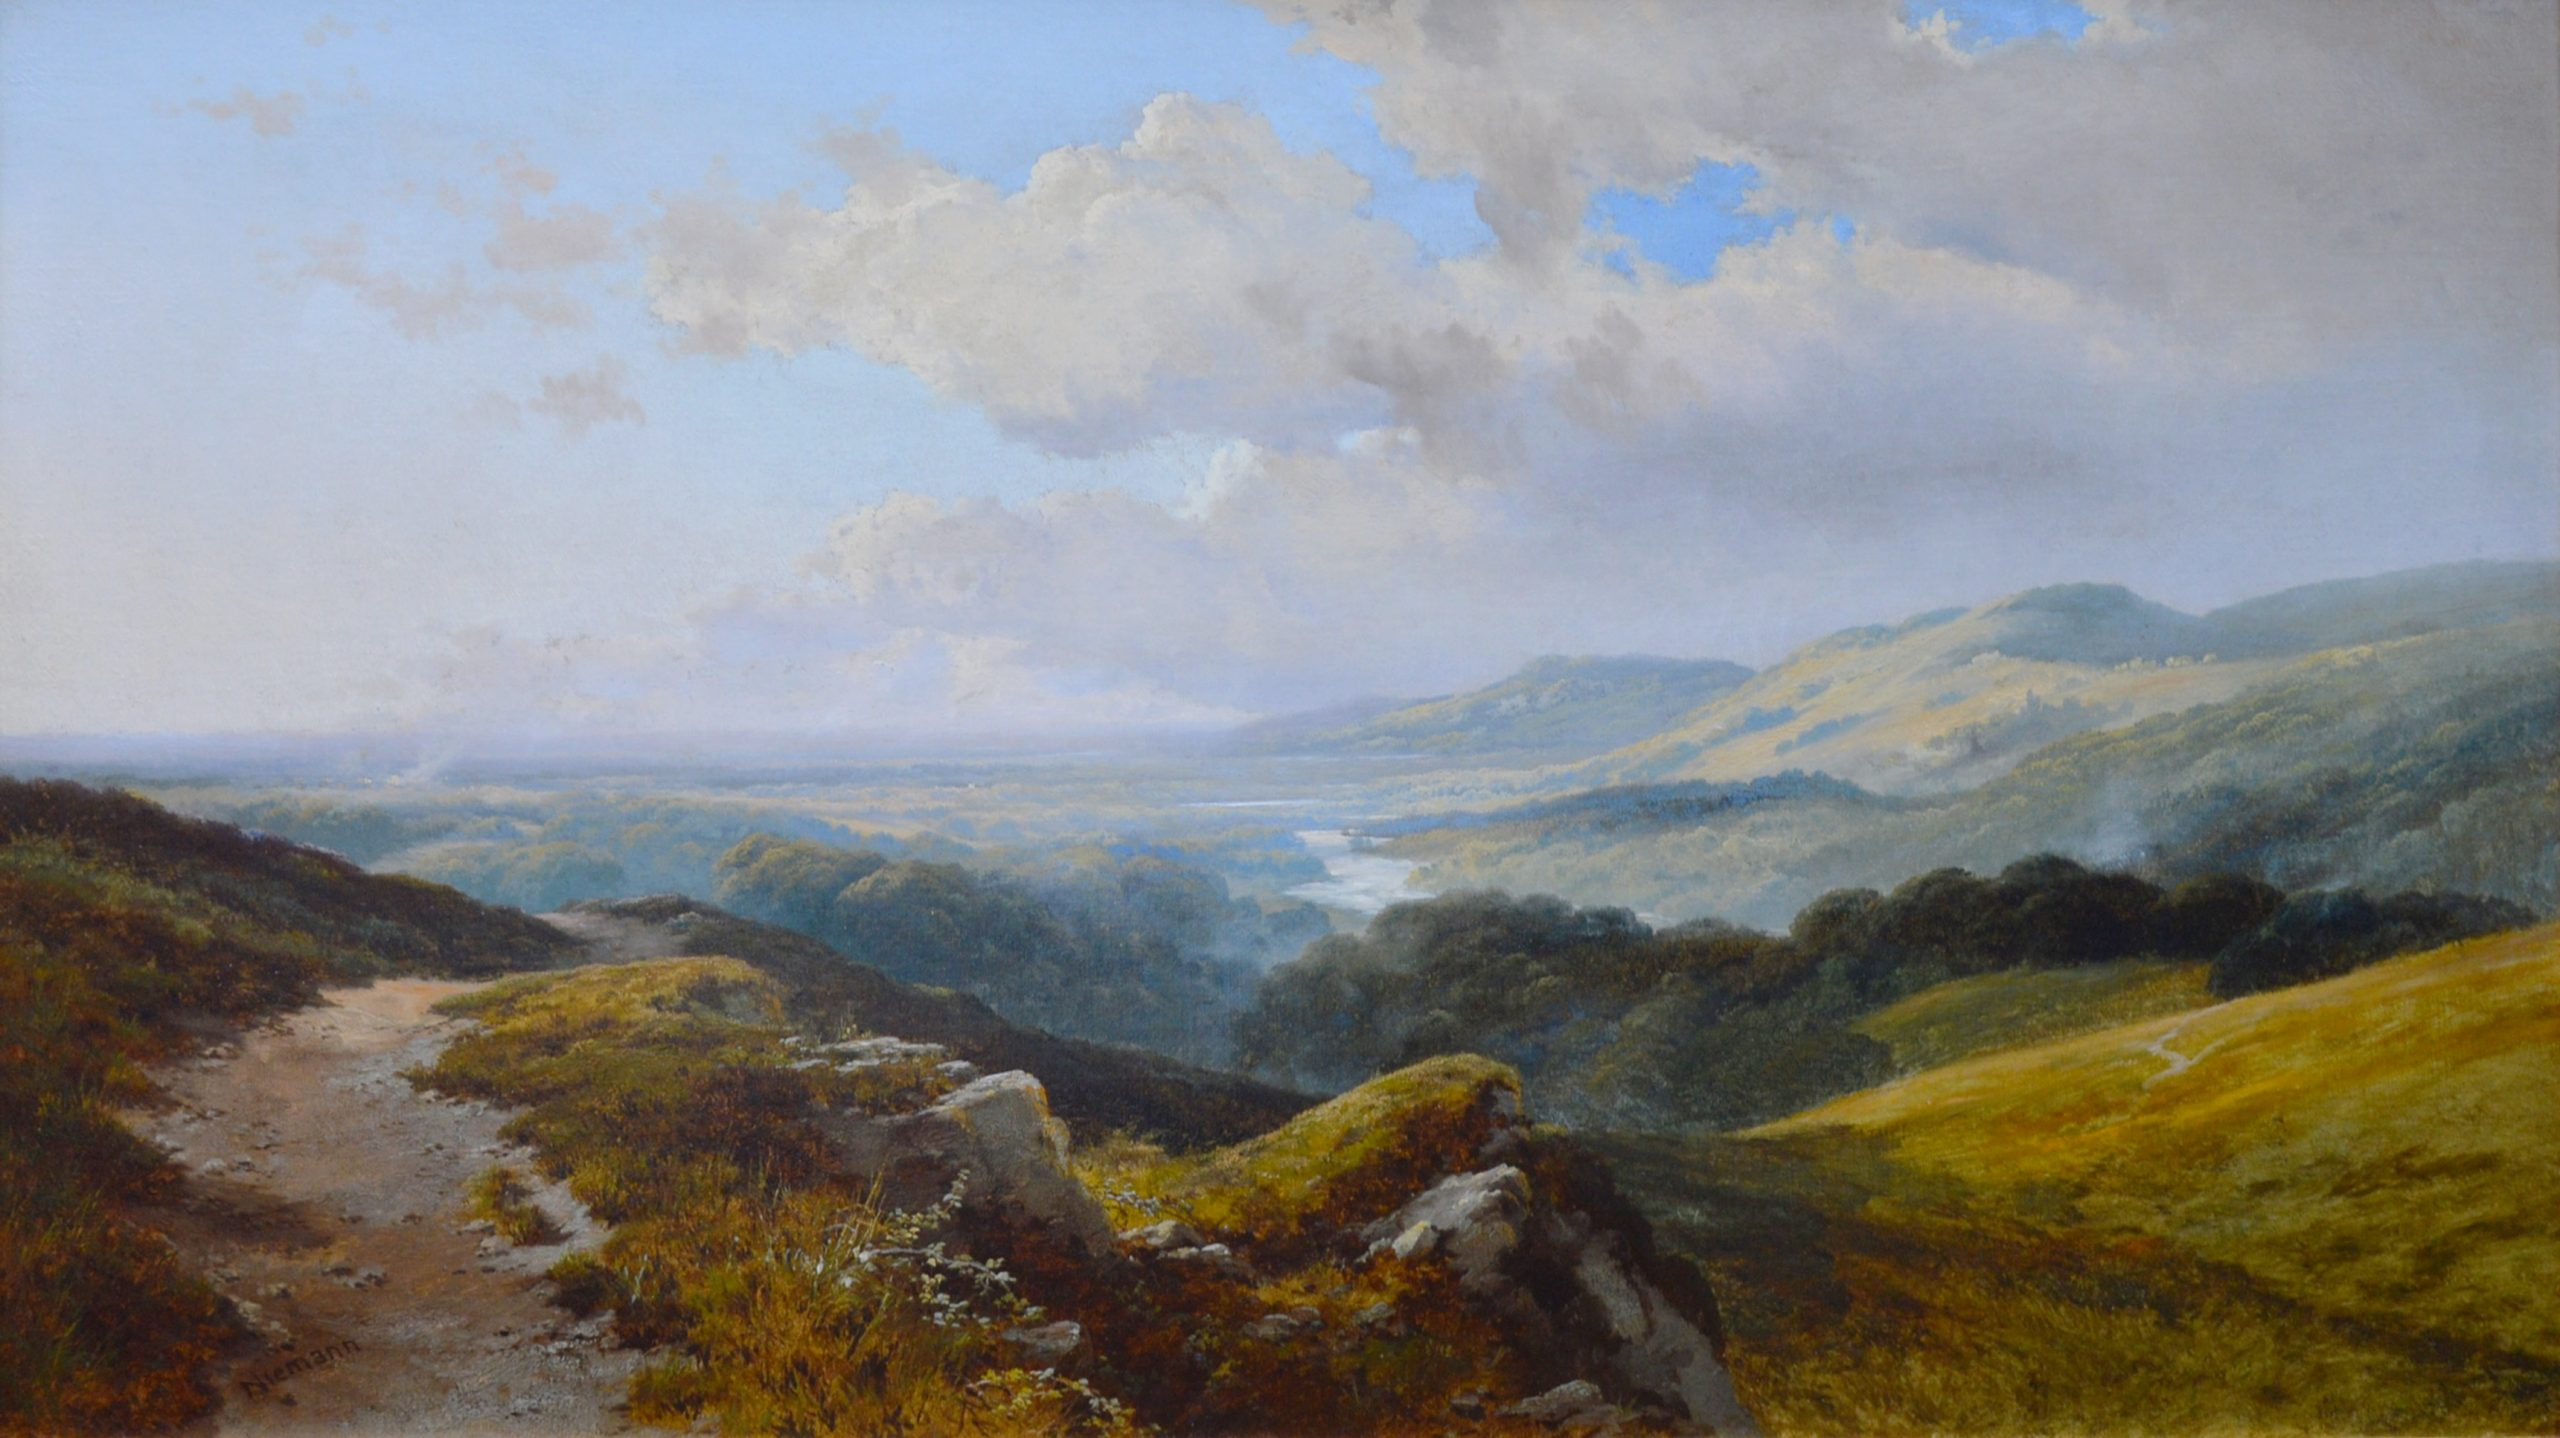 Wharfedale - 19th Century Summer Landscape of the Yorkshire Dales Image